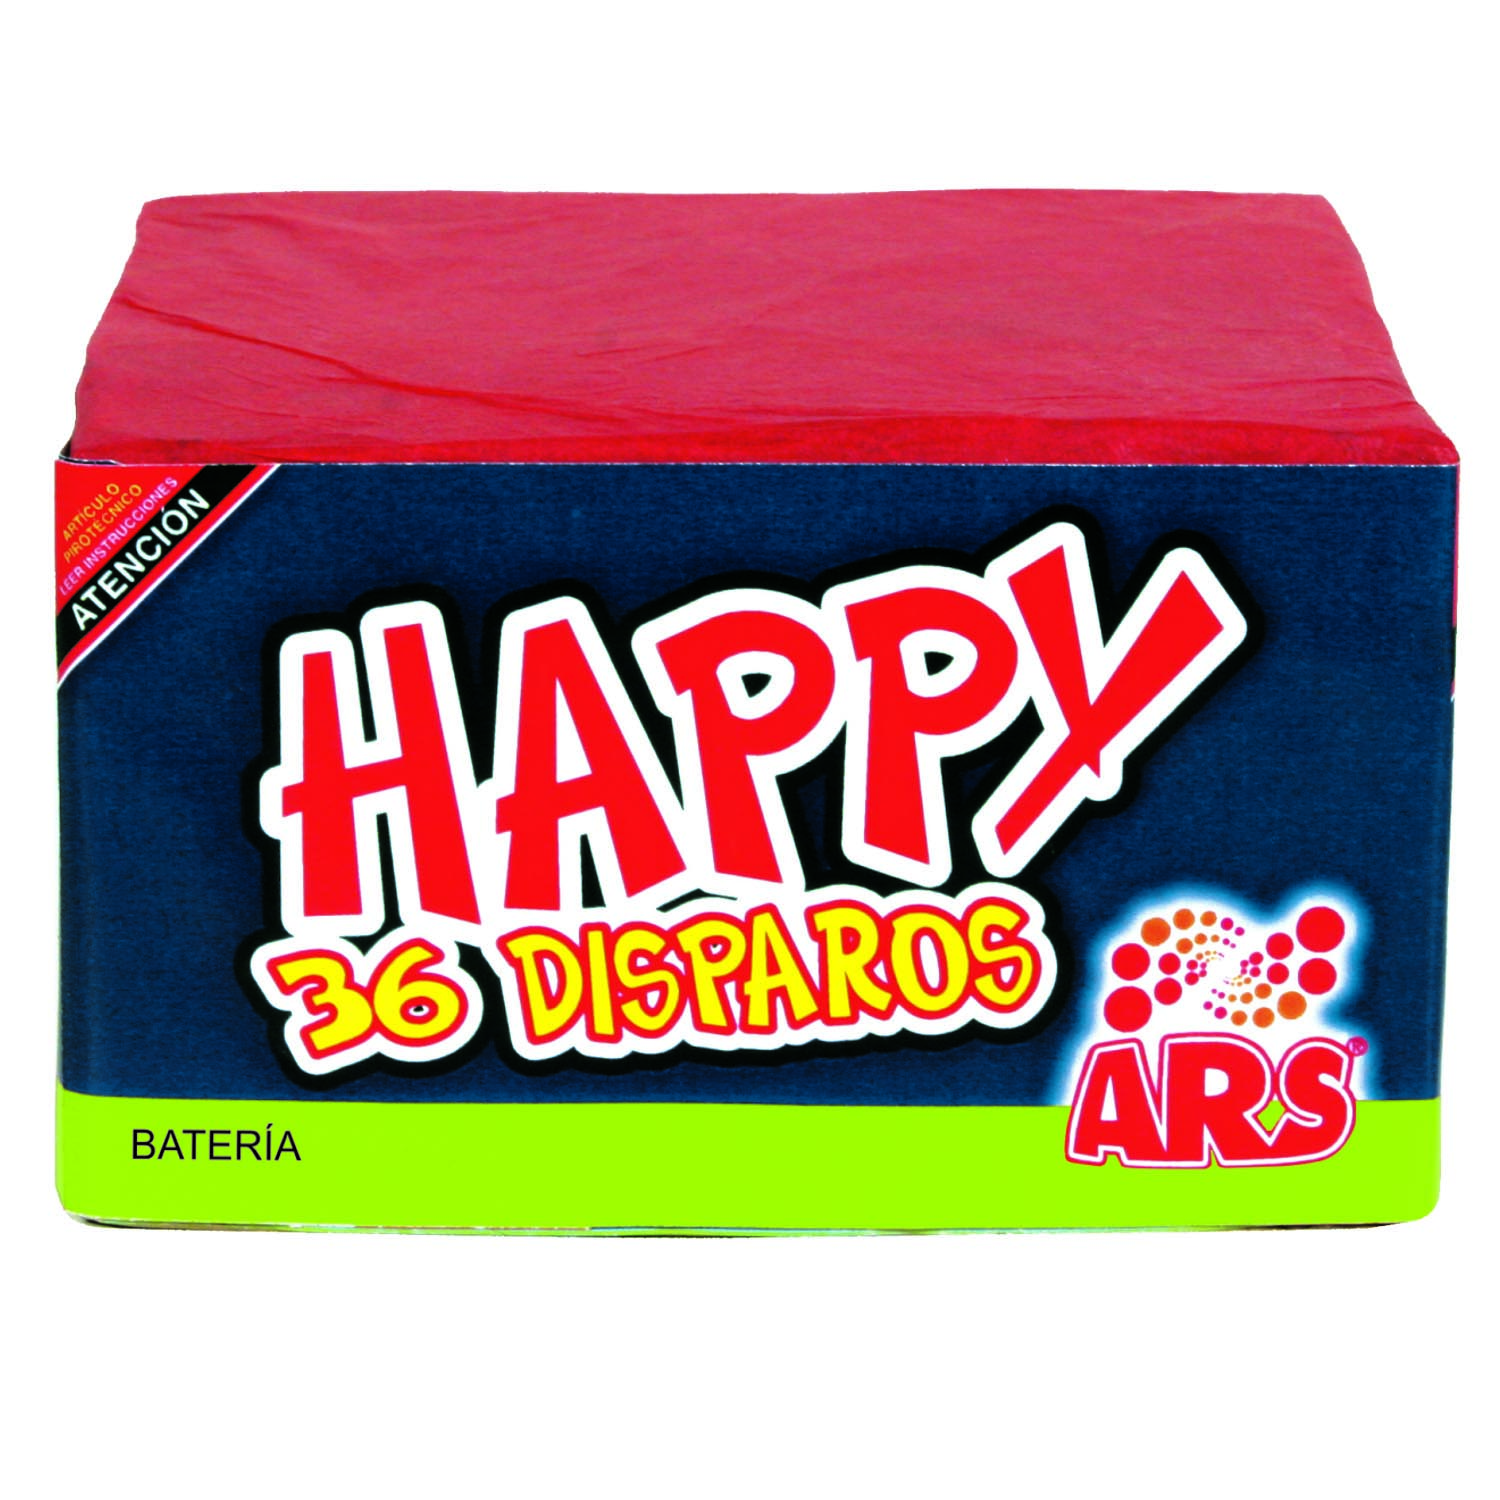 Bateria 36 disparos Happy